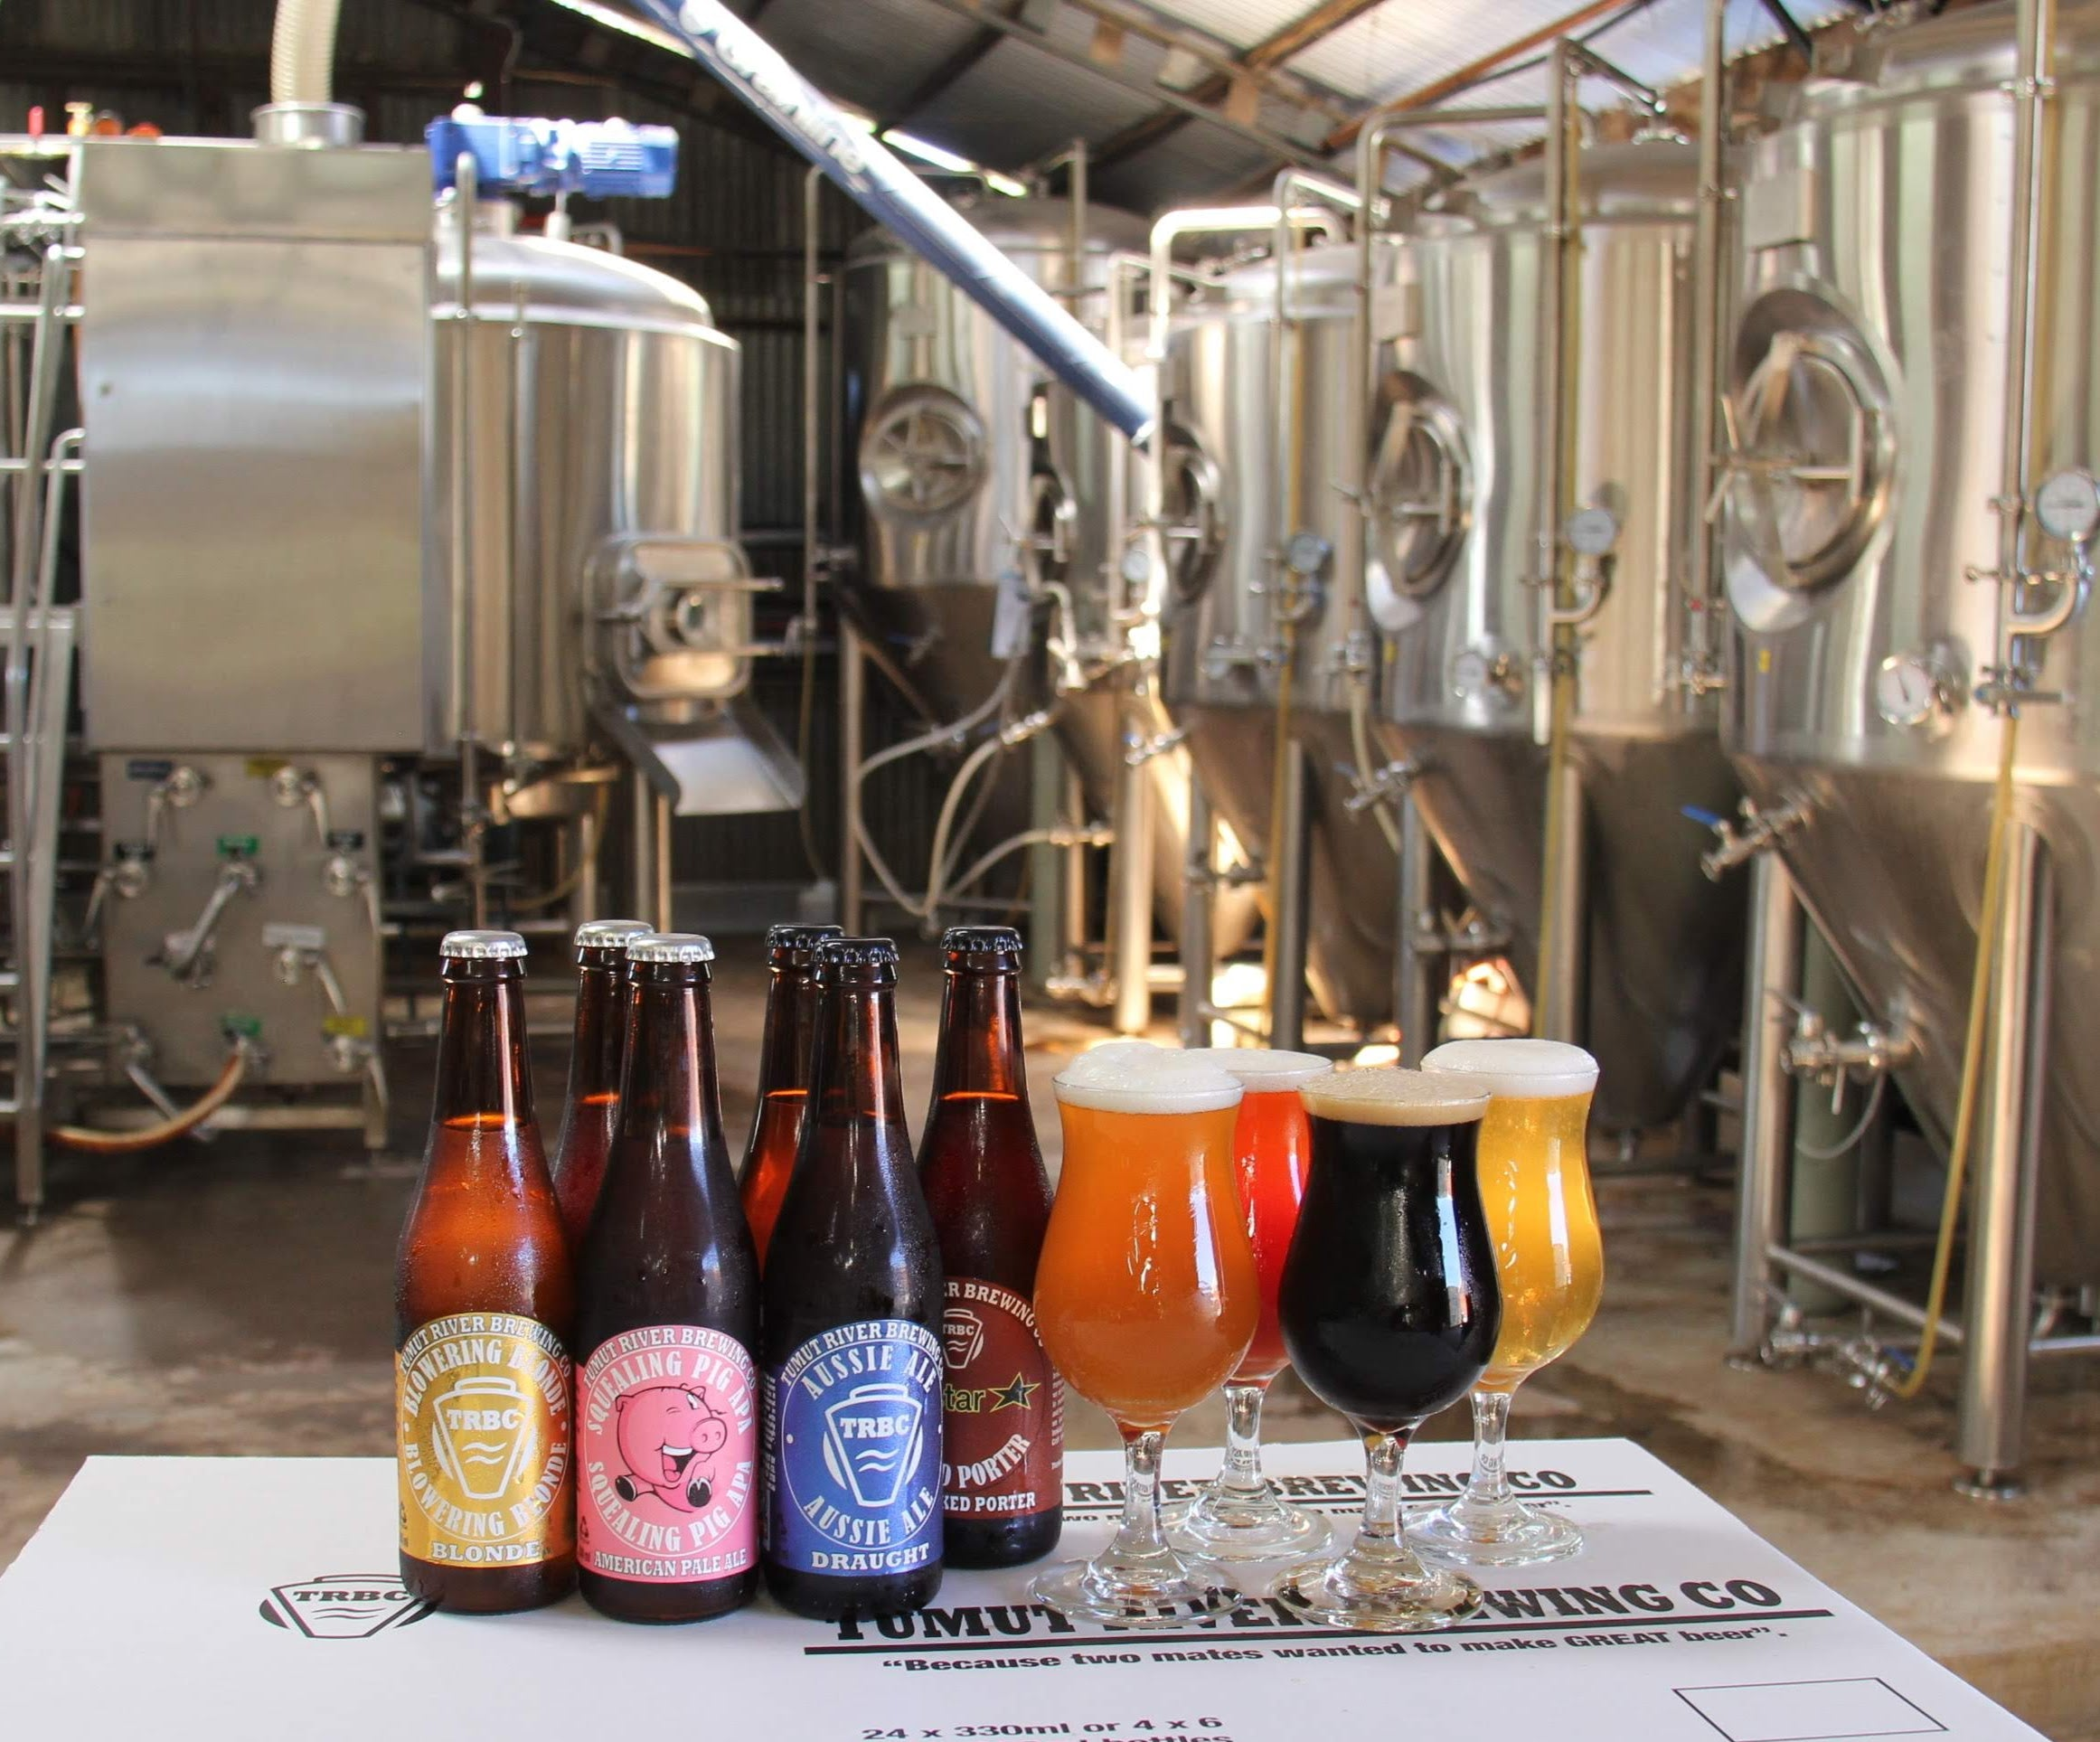 Learn to Homebrew Masterclass - Friday 1st November, 7pm - 10pm